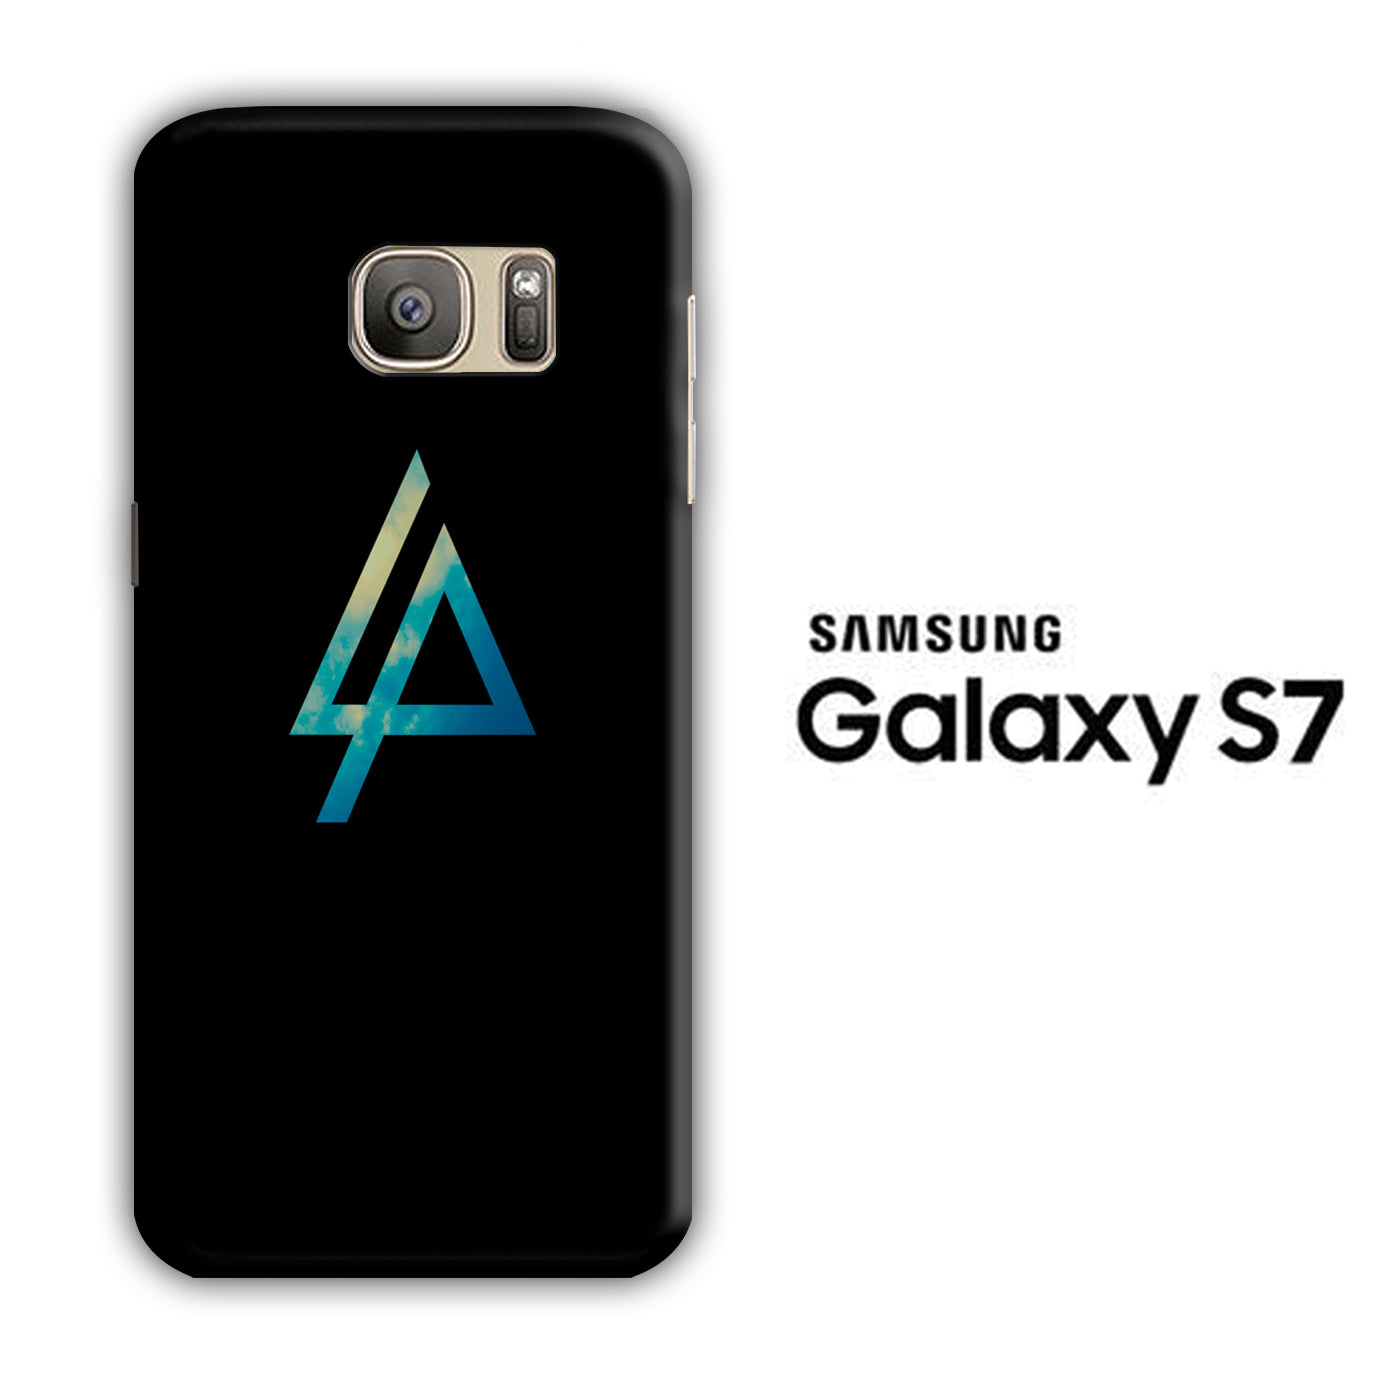 Linkin Park LP 001 Samsung Galaxy S7 3D Case